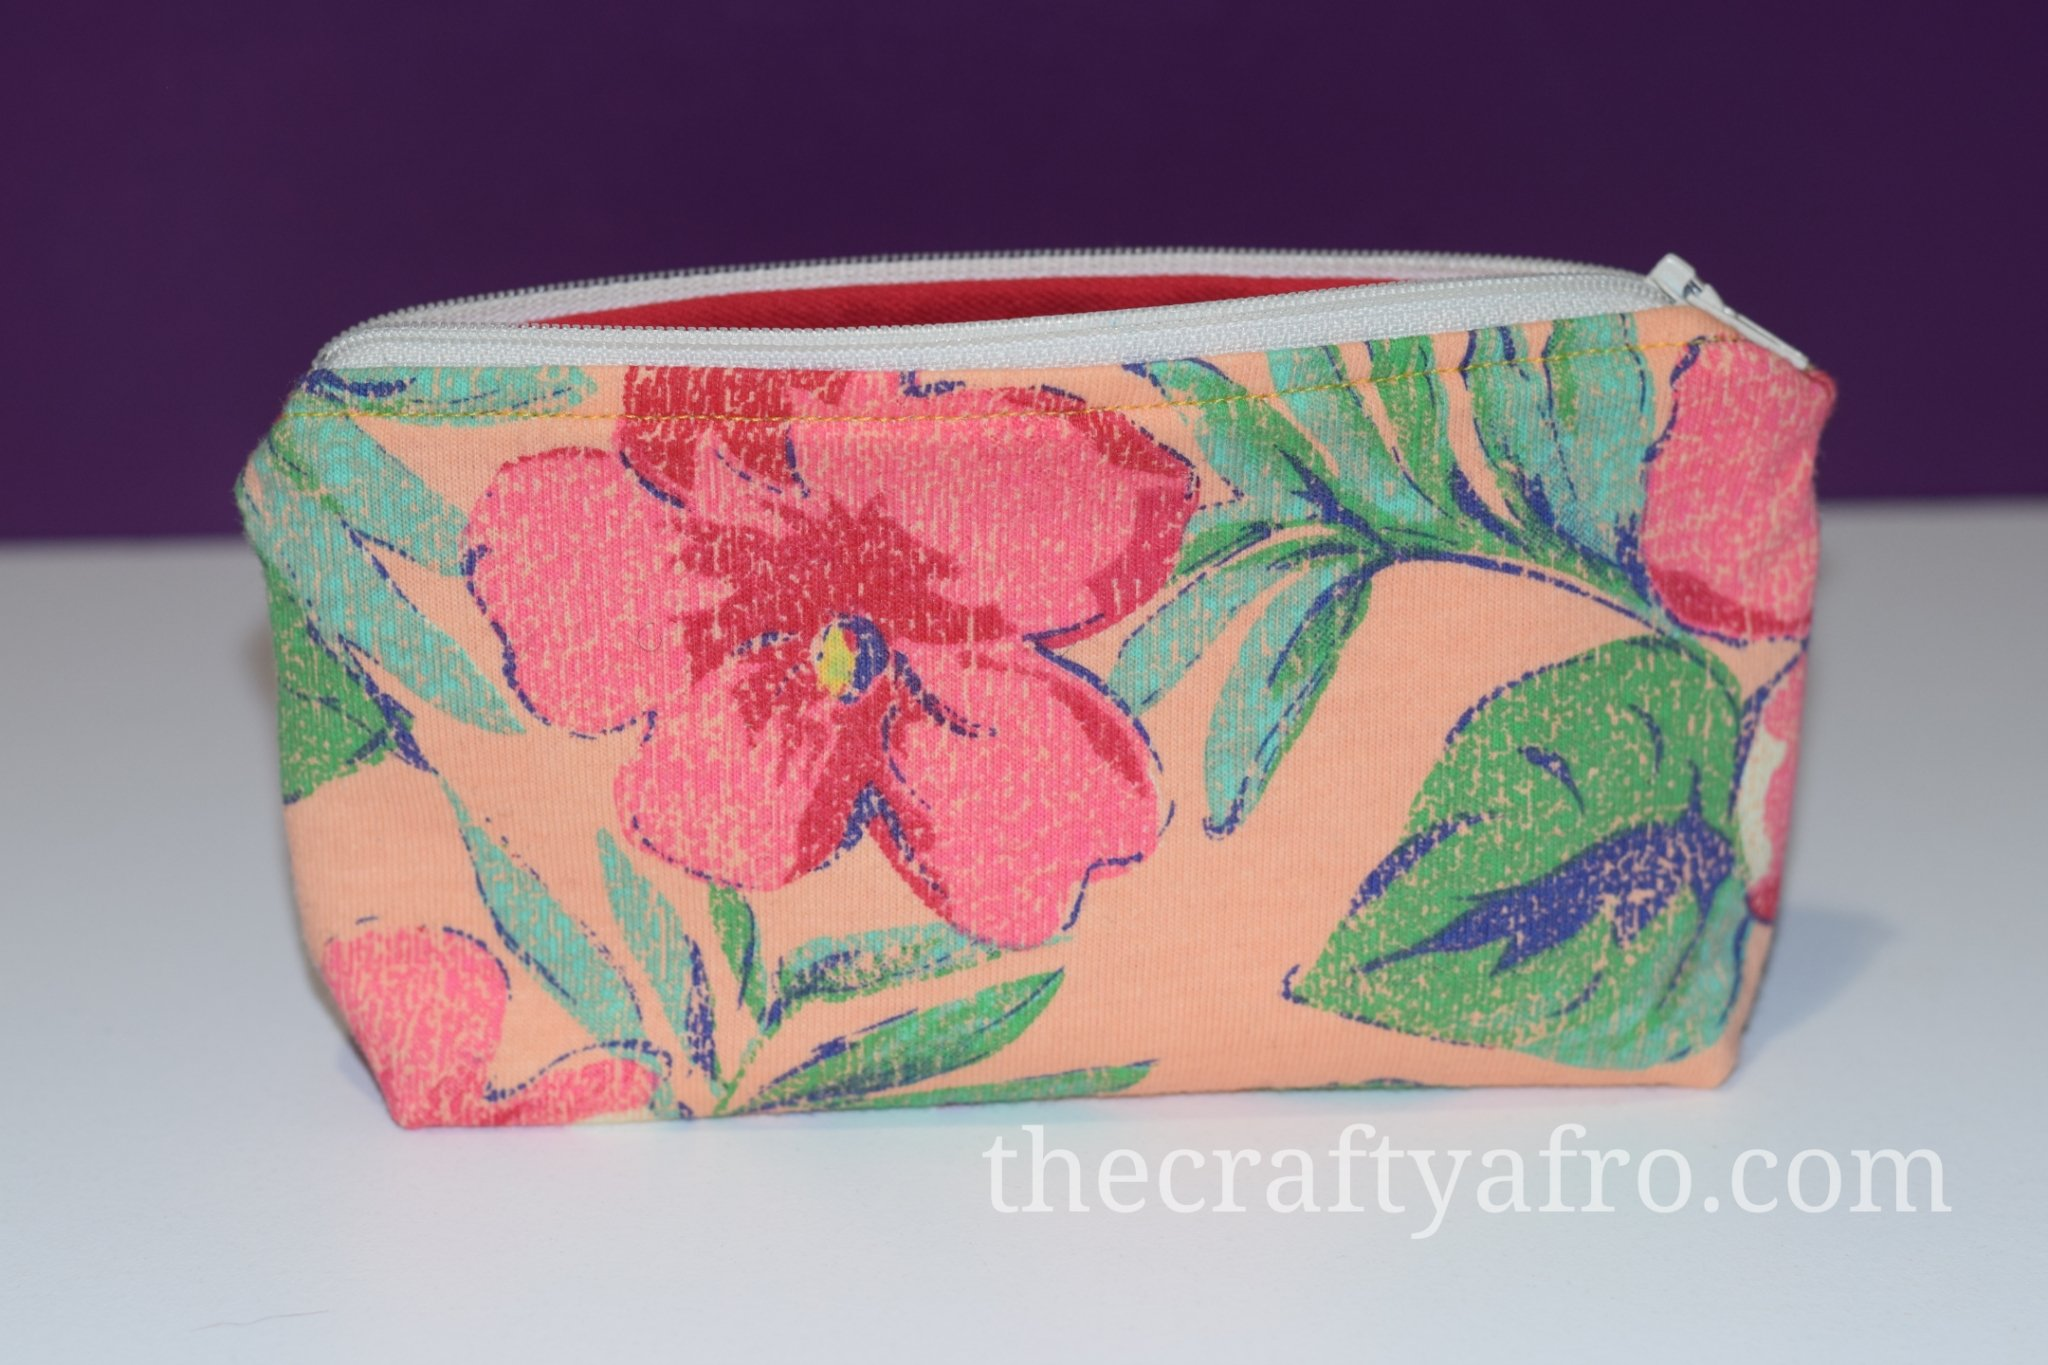 Flower theme zipper pouch